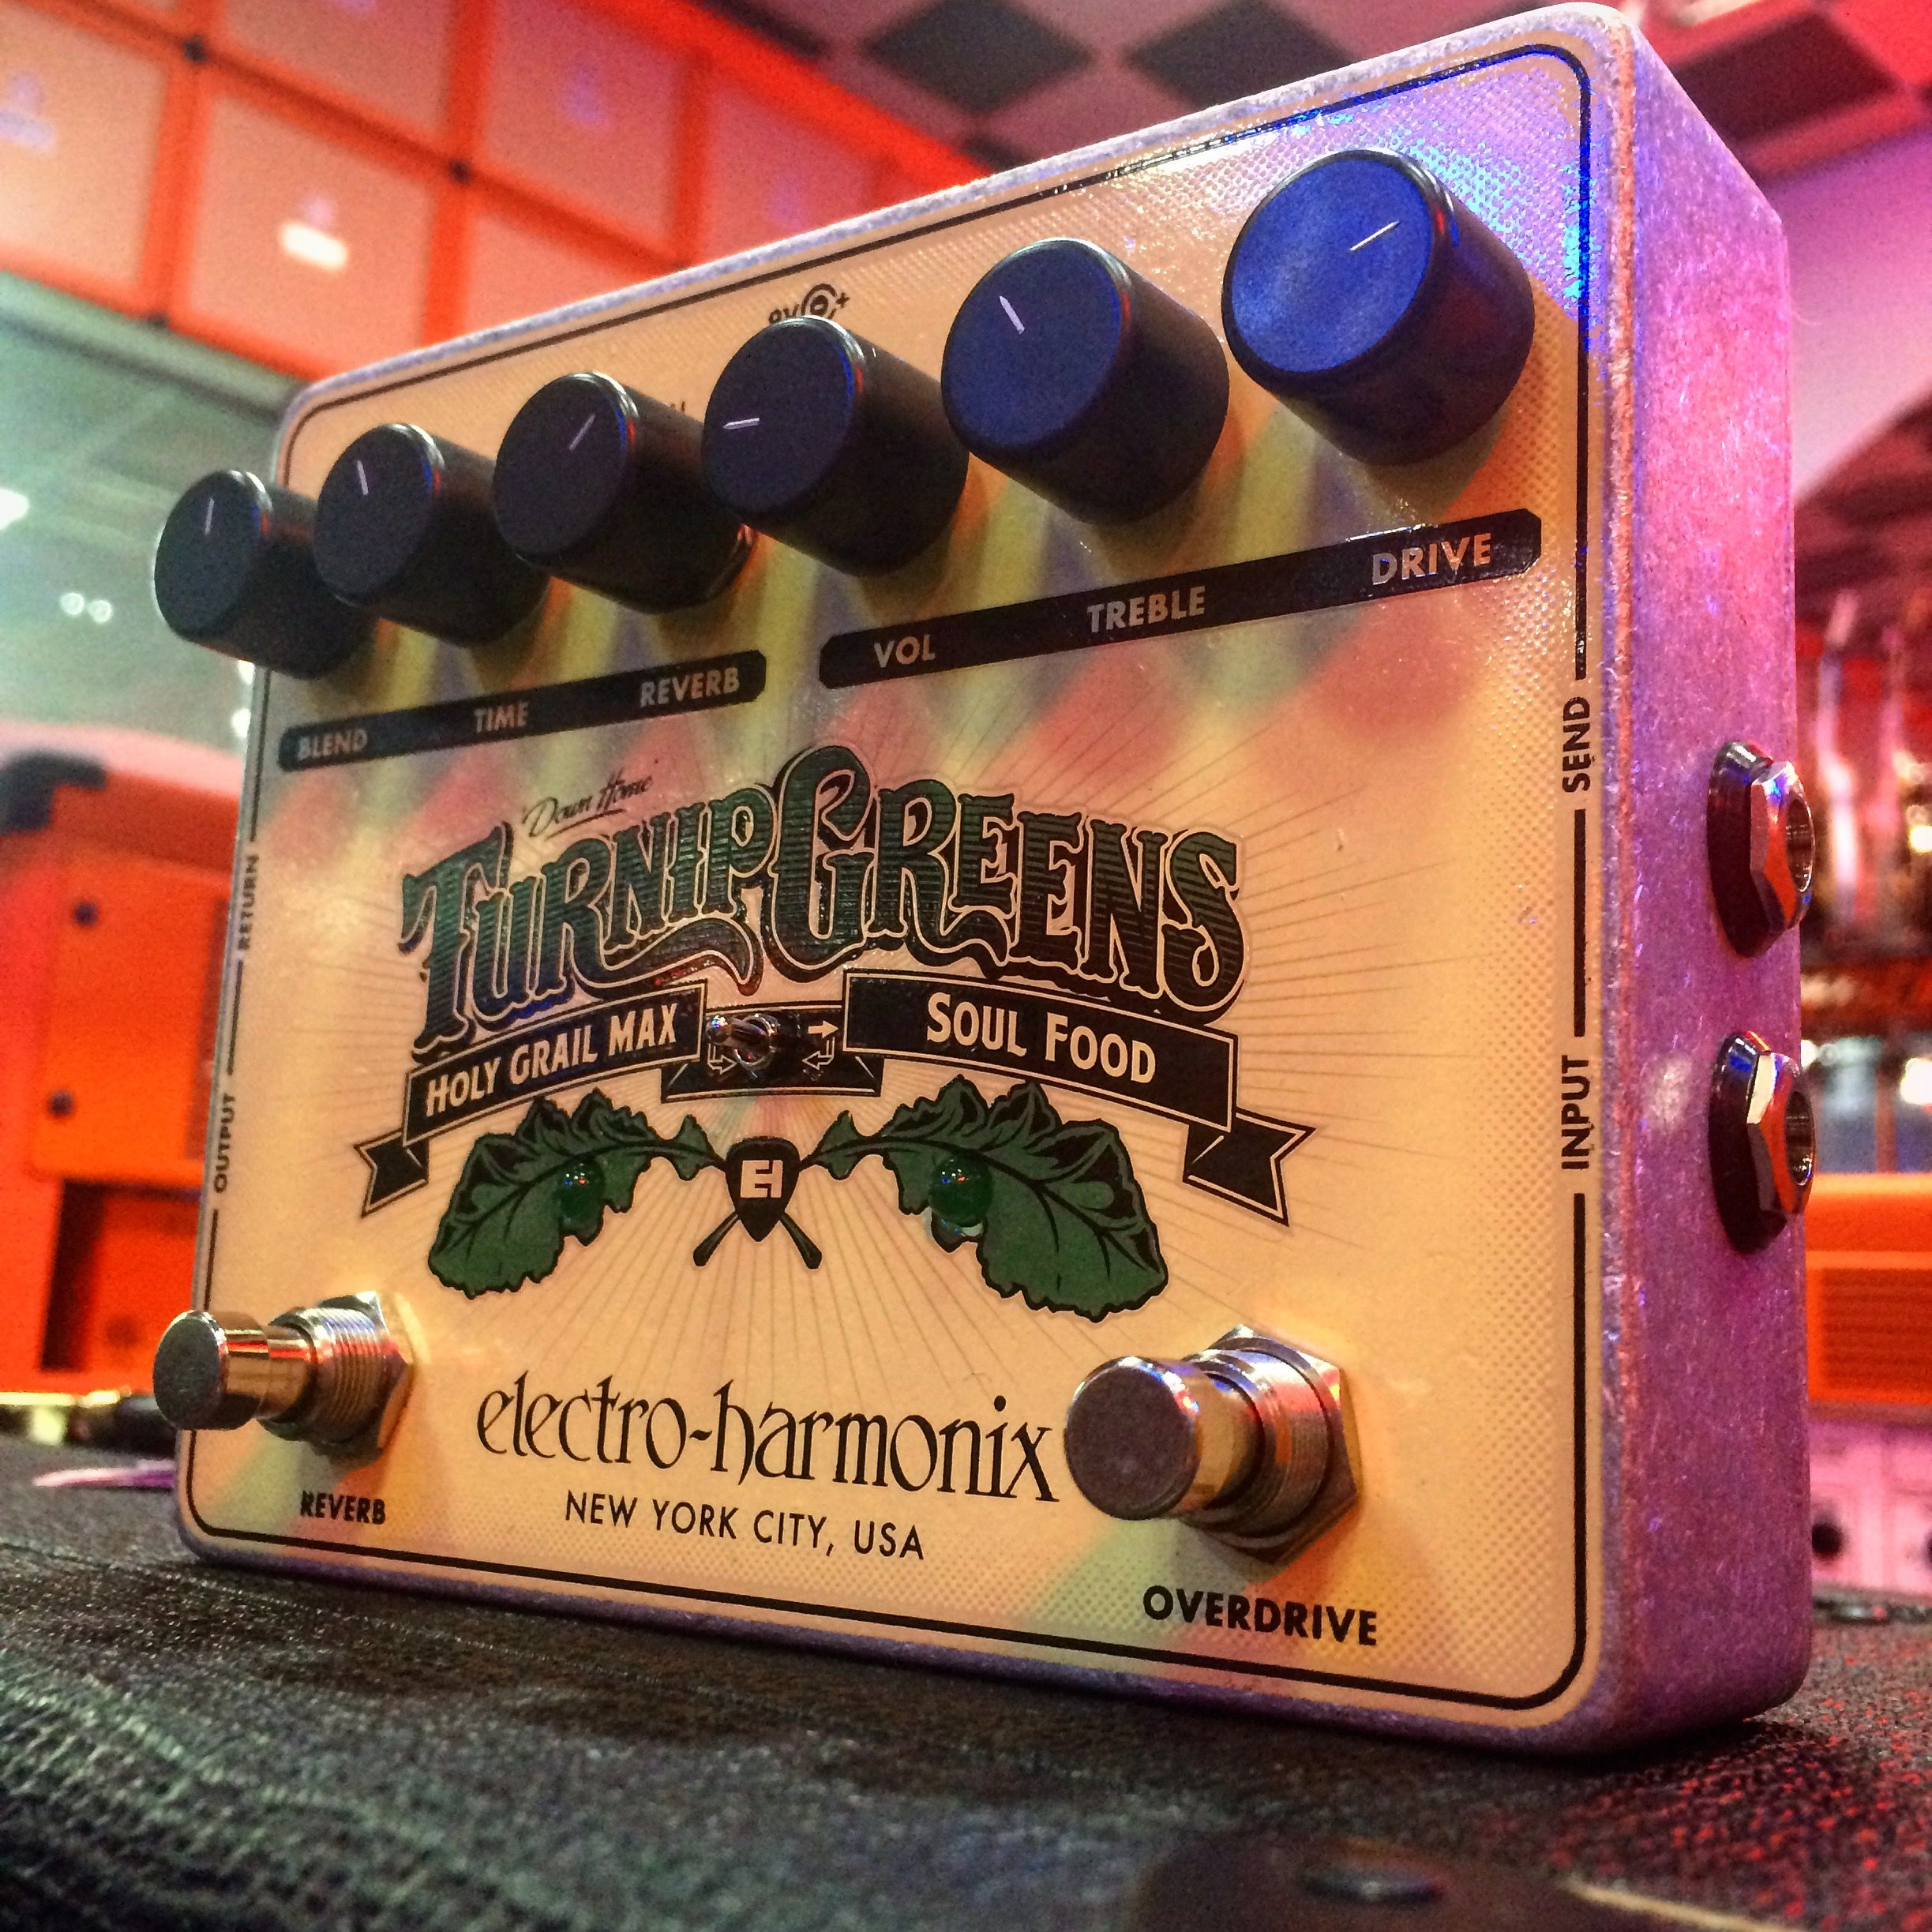 Ehx turnip greens soul food and holy grail max pedal http